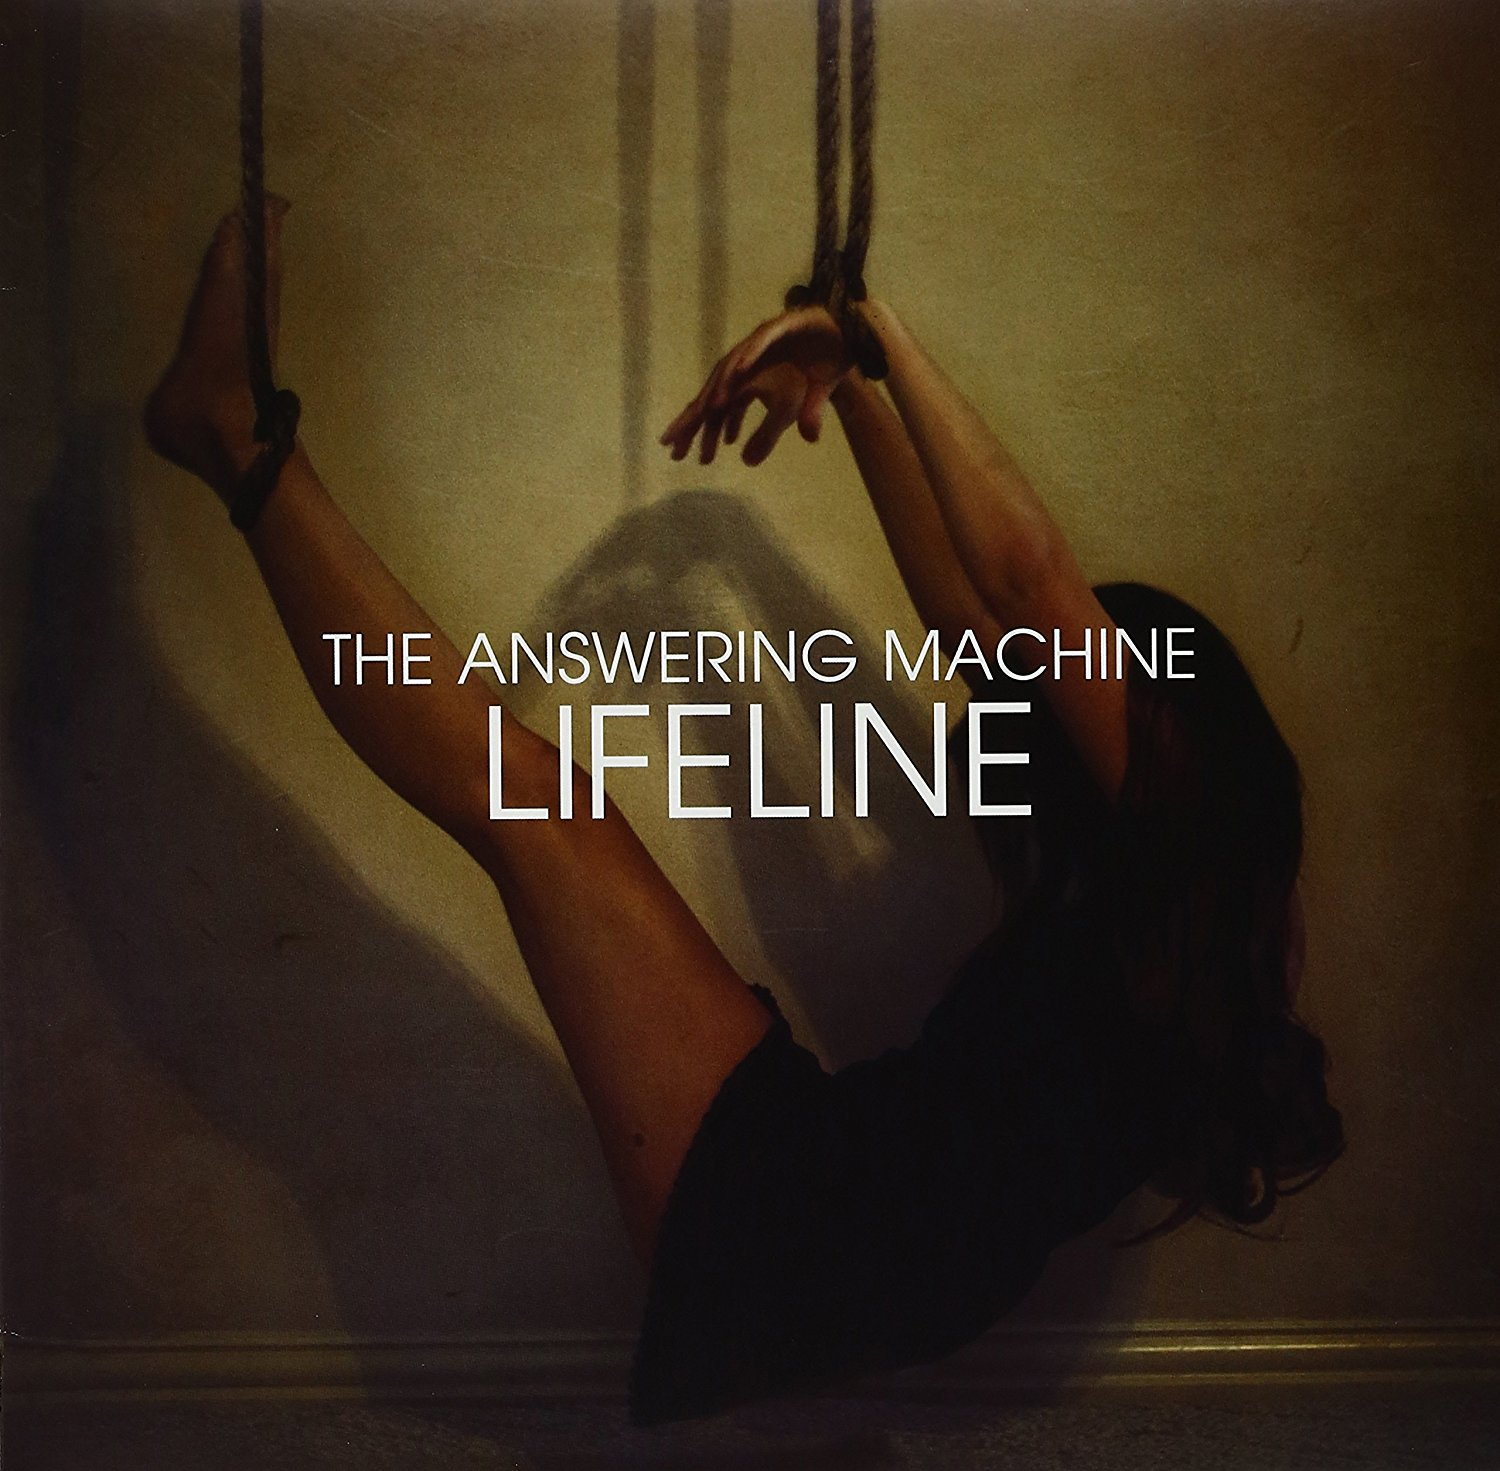 Answering Machine (The) Lifeline